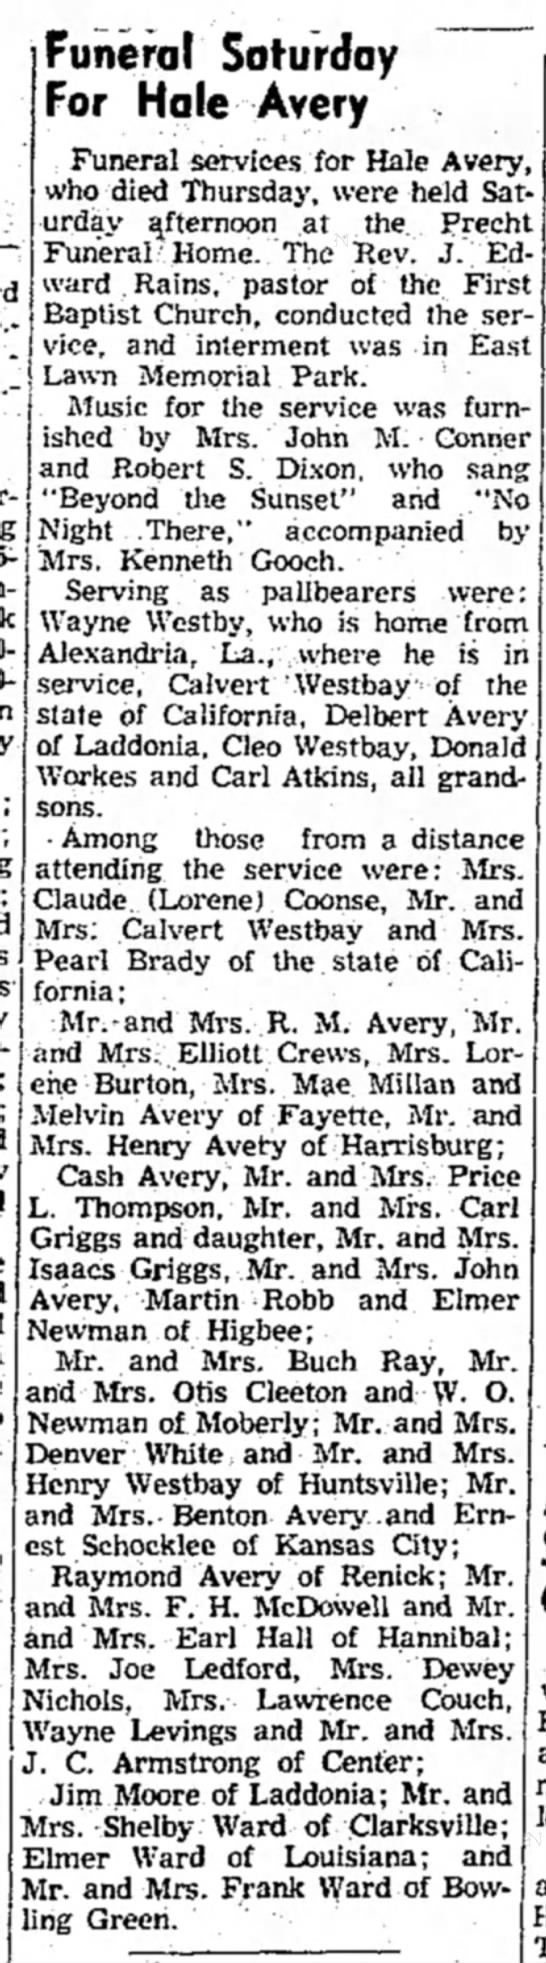 """""""Funeral Saturday For Hale Avery,"""" Mexico (Missouri) Ledger, 17 May 1954, p. 6, col. 3."""